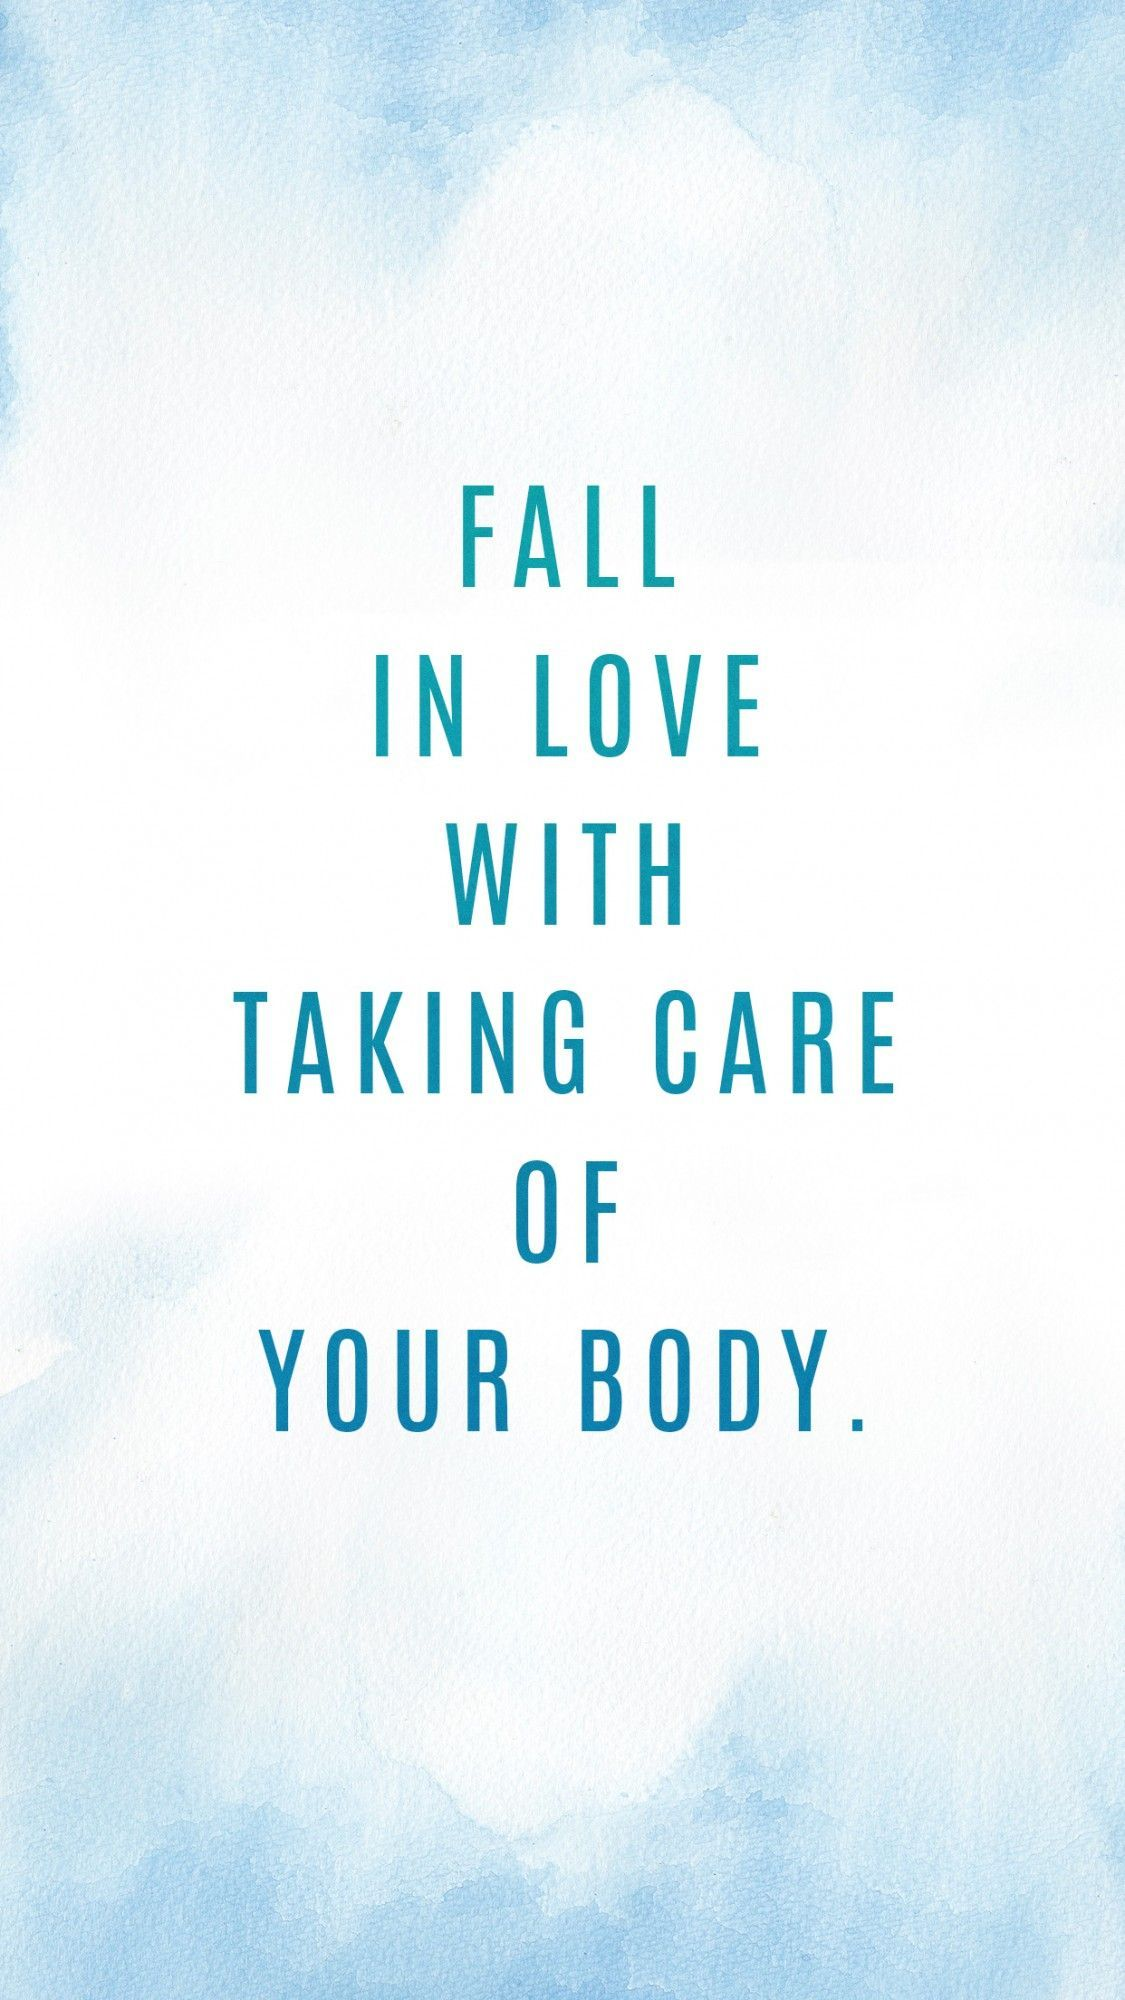 Facebook Toddgreenefitness Teaminternallyfit Tone It Up Inspirational Fitness Quotes